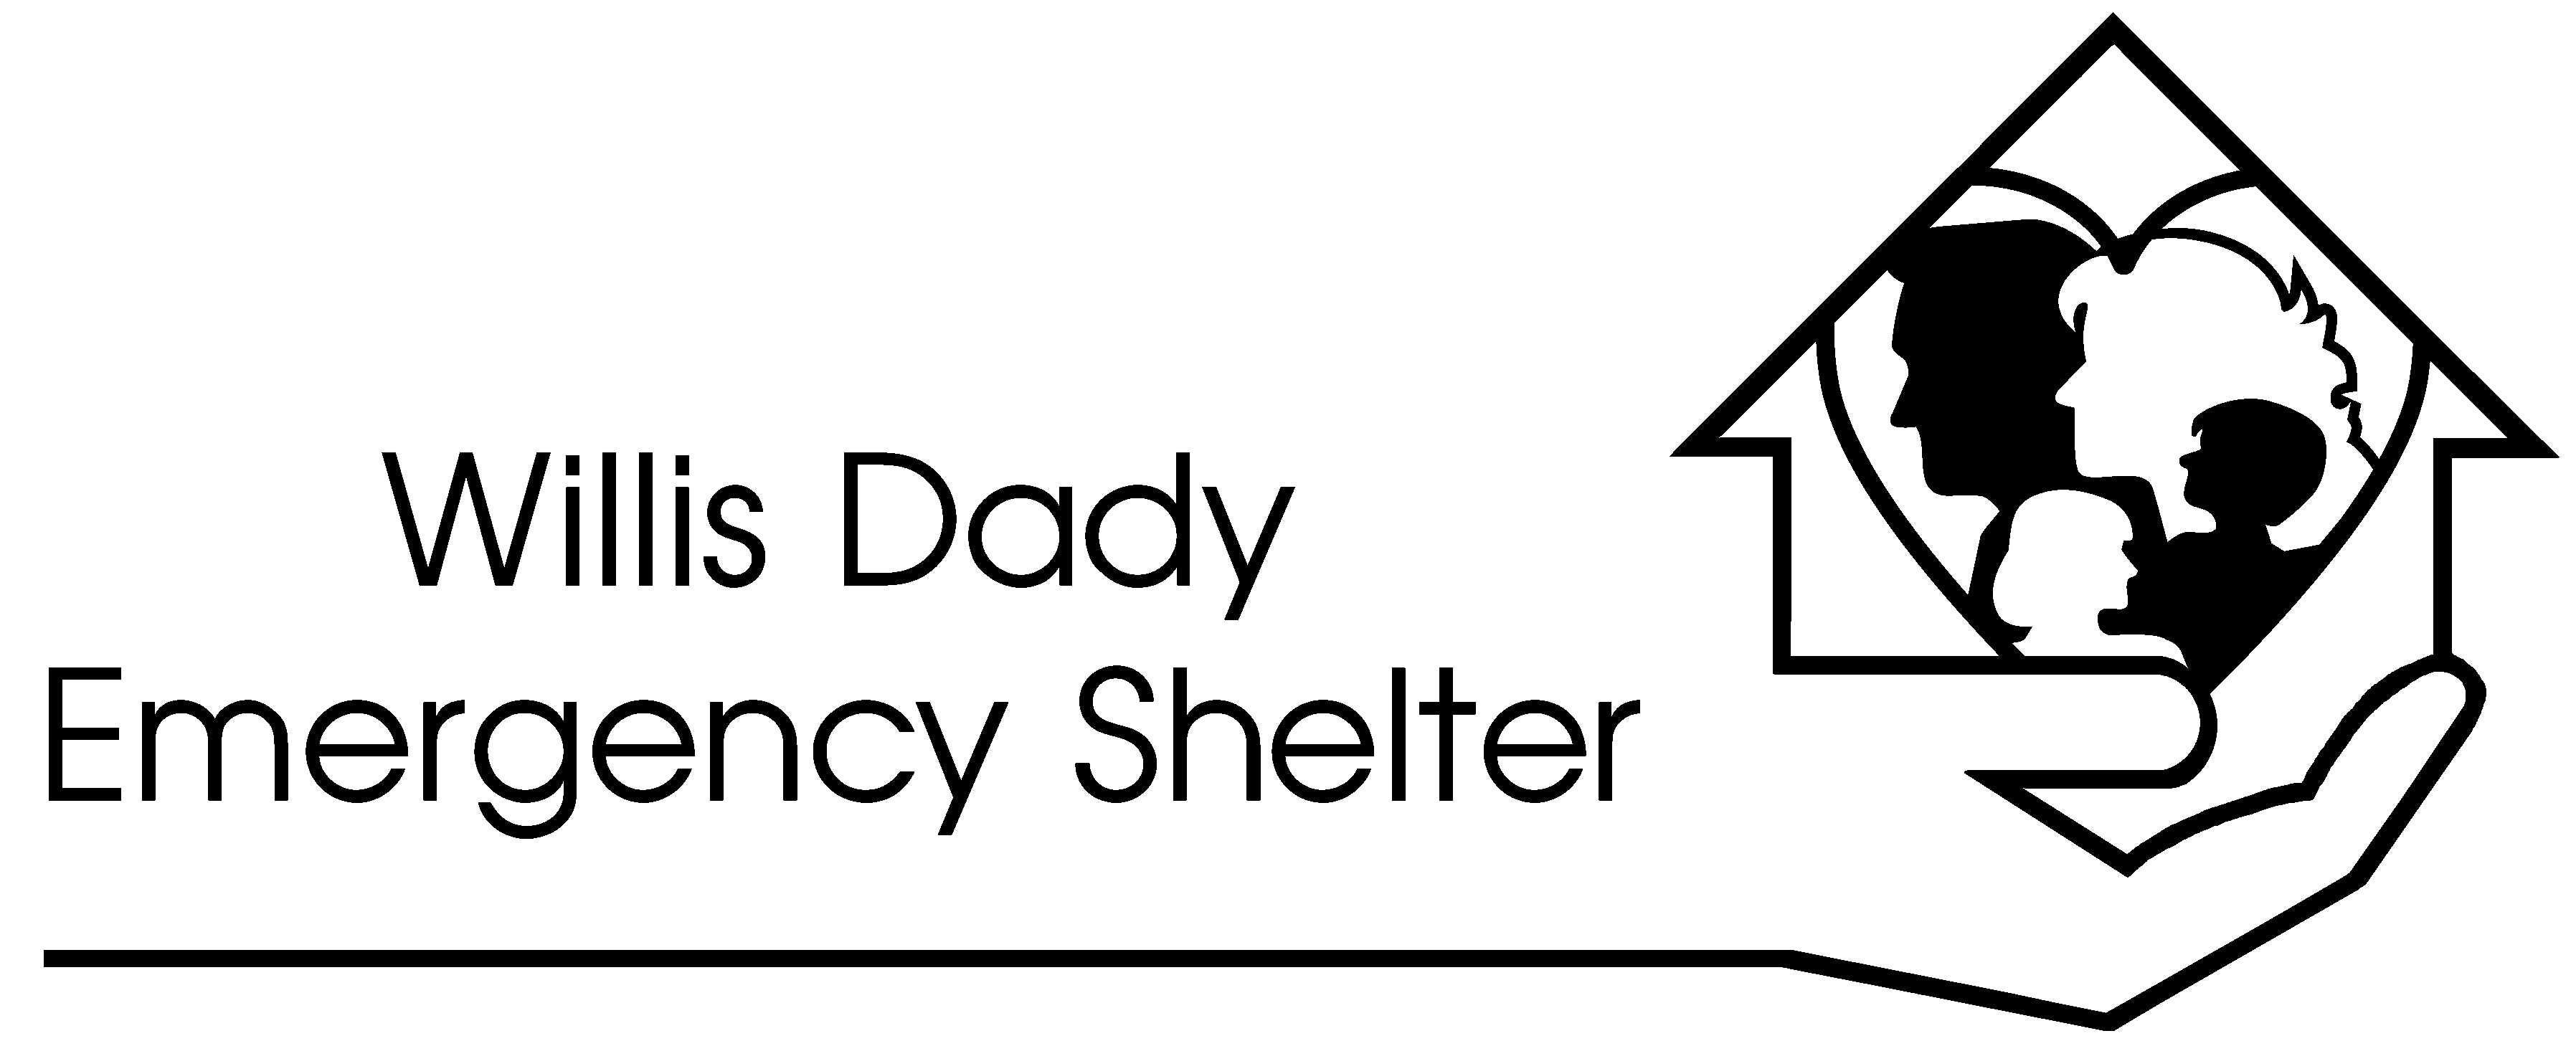 The Mission Of The Willis Dady Shelter Is To Provide A